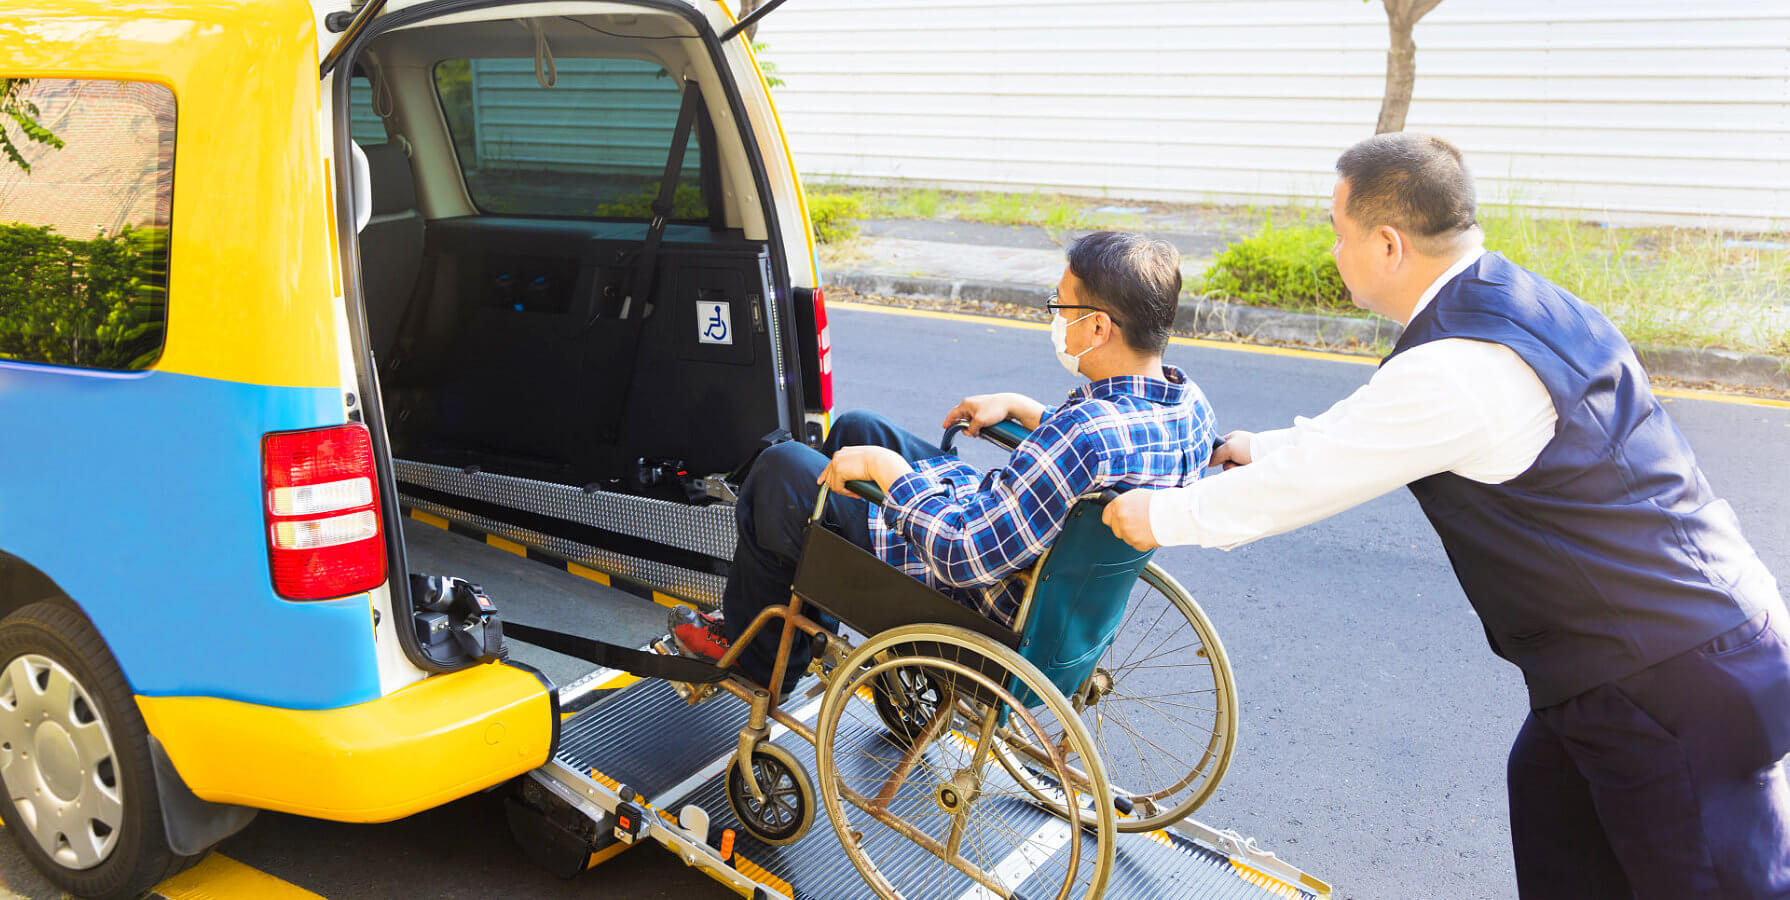 caregiver assisting elderly get into the vehicle